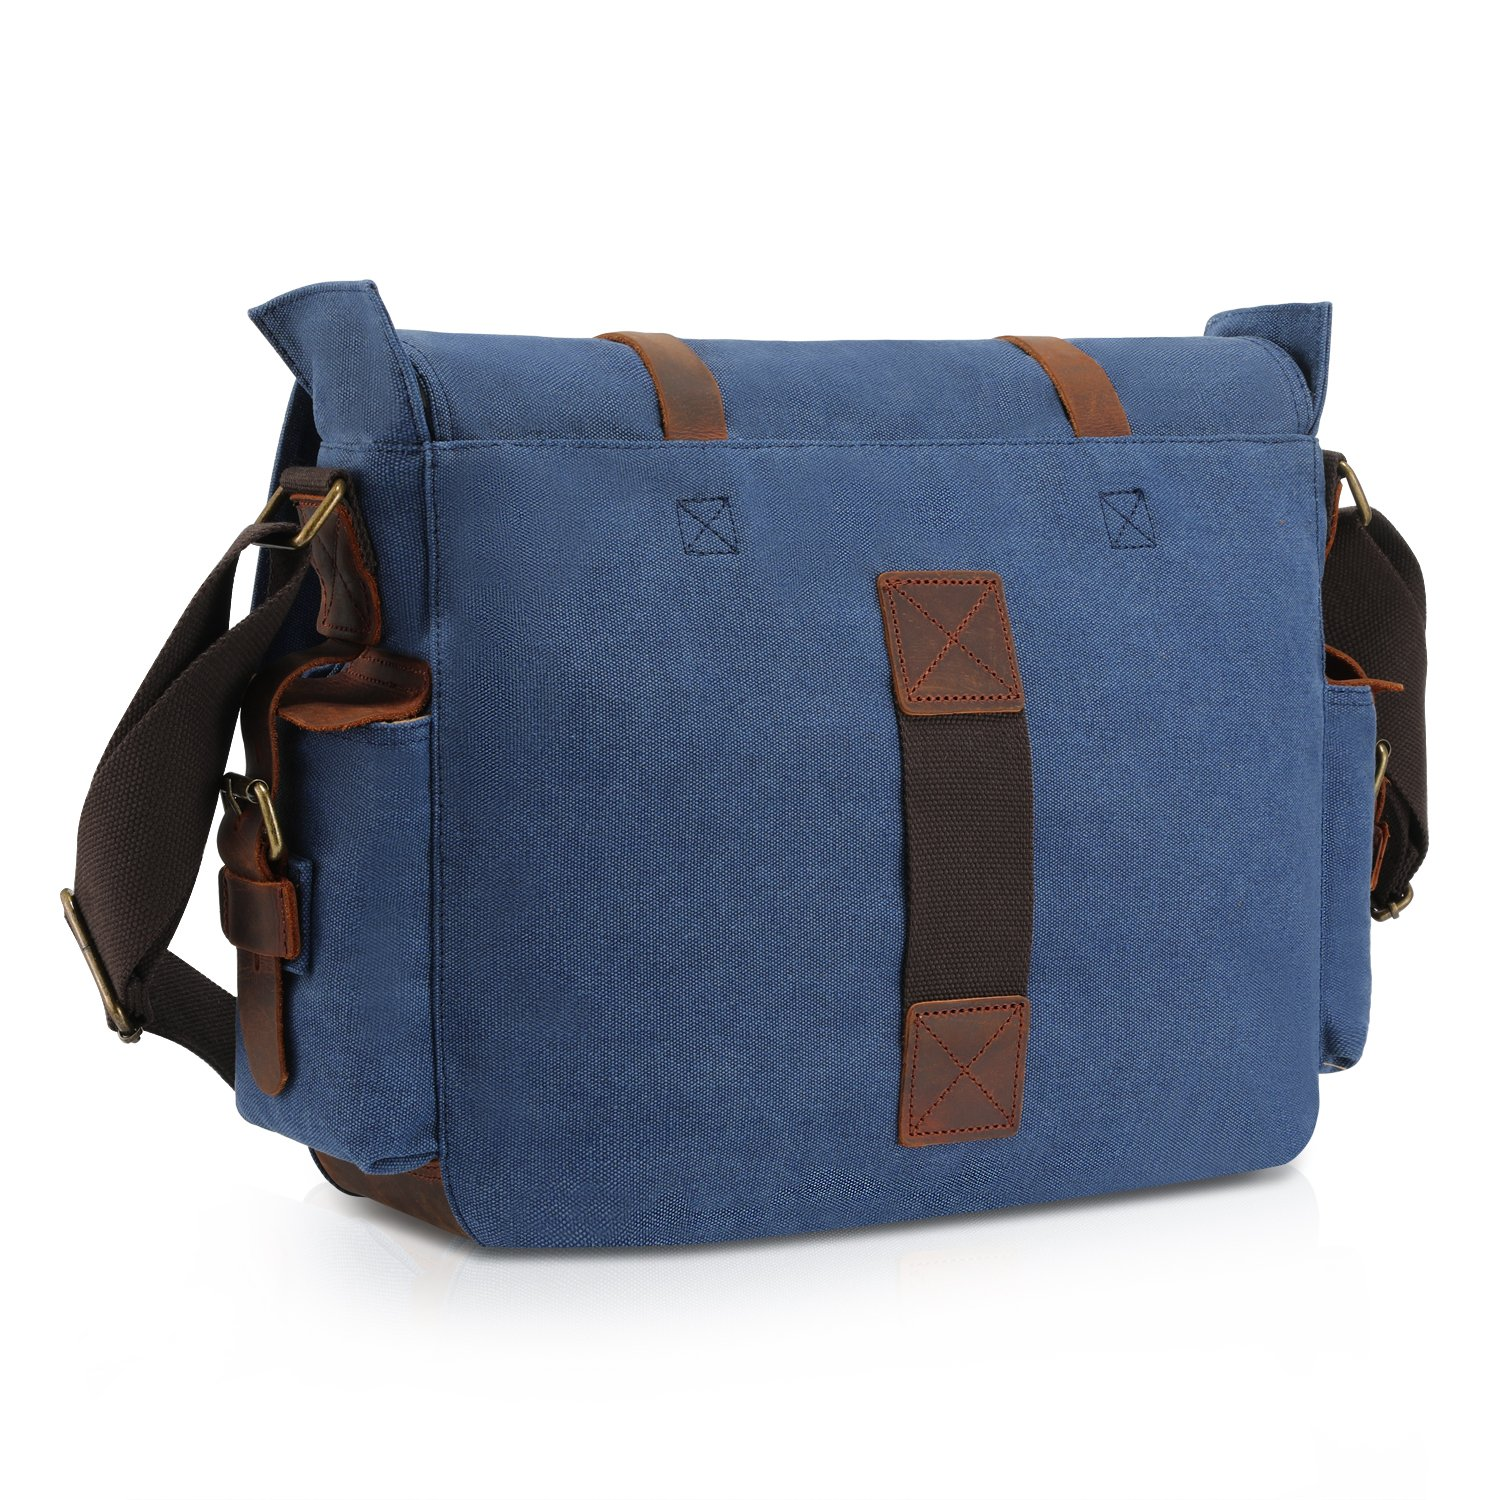 Kattee Classic Military Canvas Shoulder Messenger Bag Leather Straps Fit 16  inch Laptop (Blue)  Amazon.ca  Luggage   Bags 4f12f57d010cb